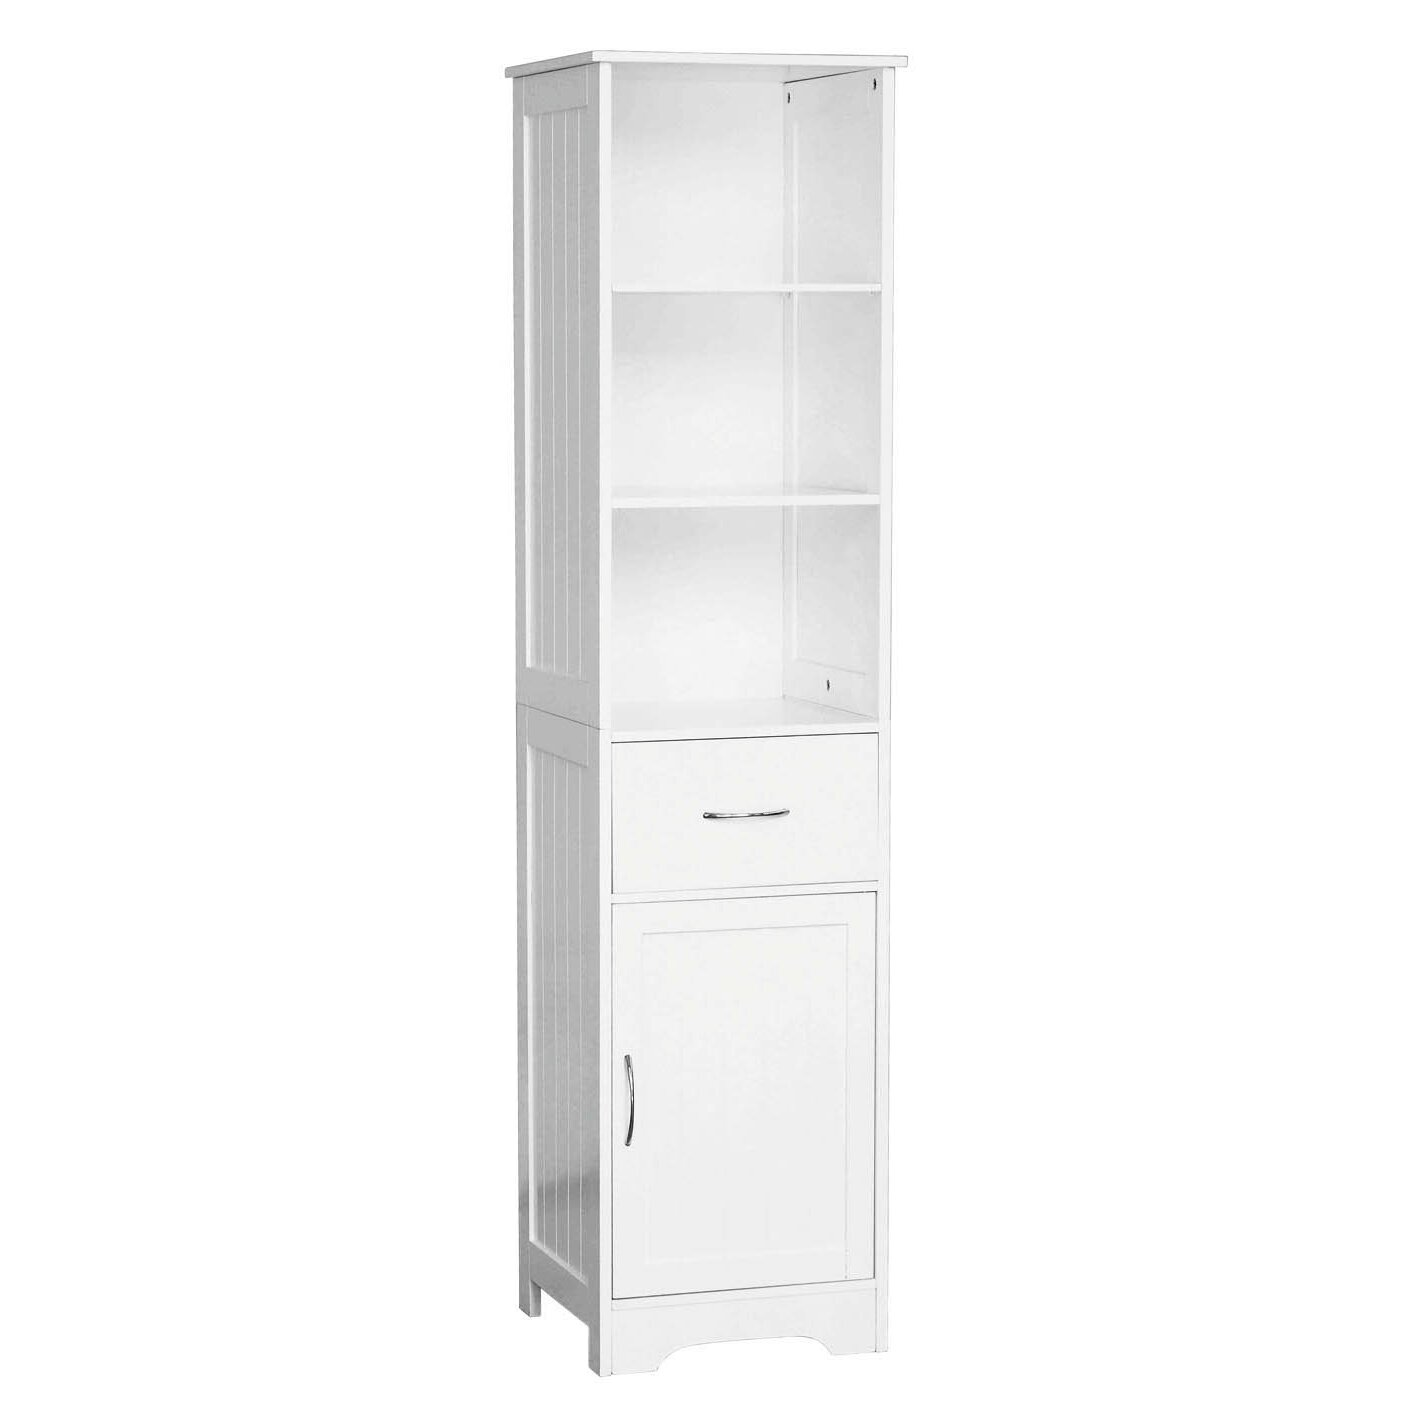 freestanding tall bathroom cabinet | My Web Value